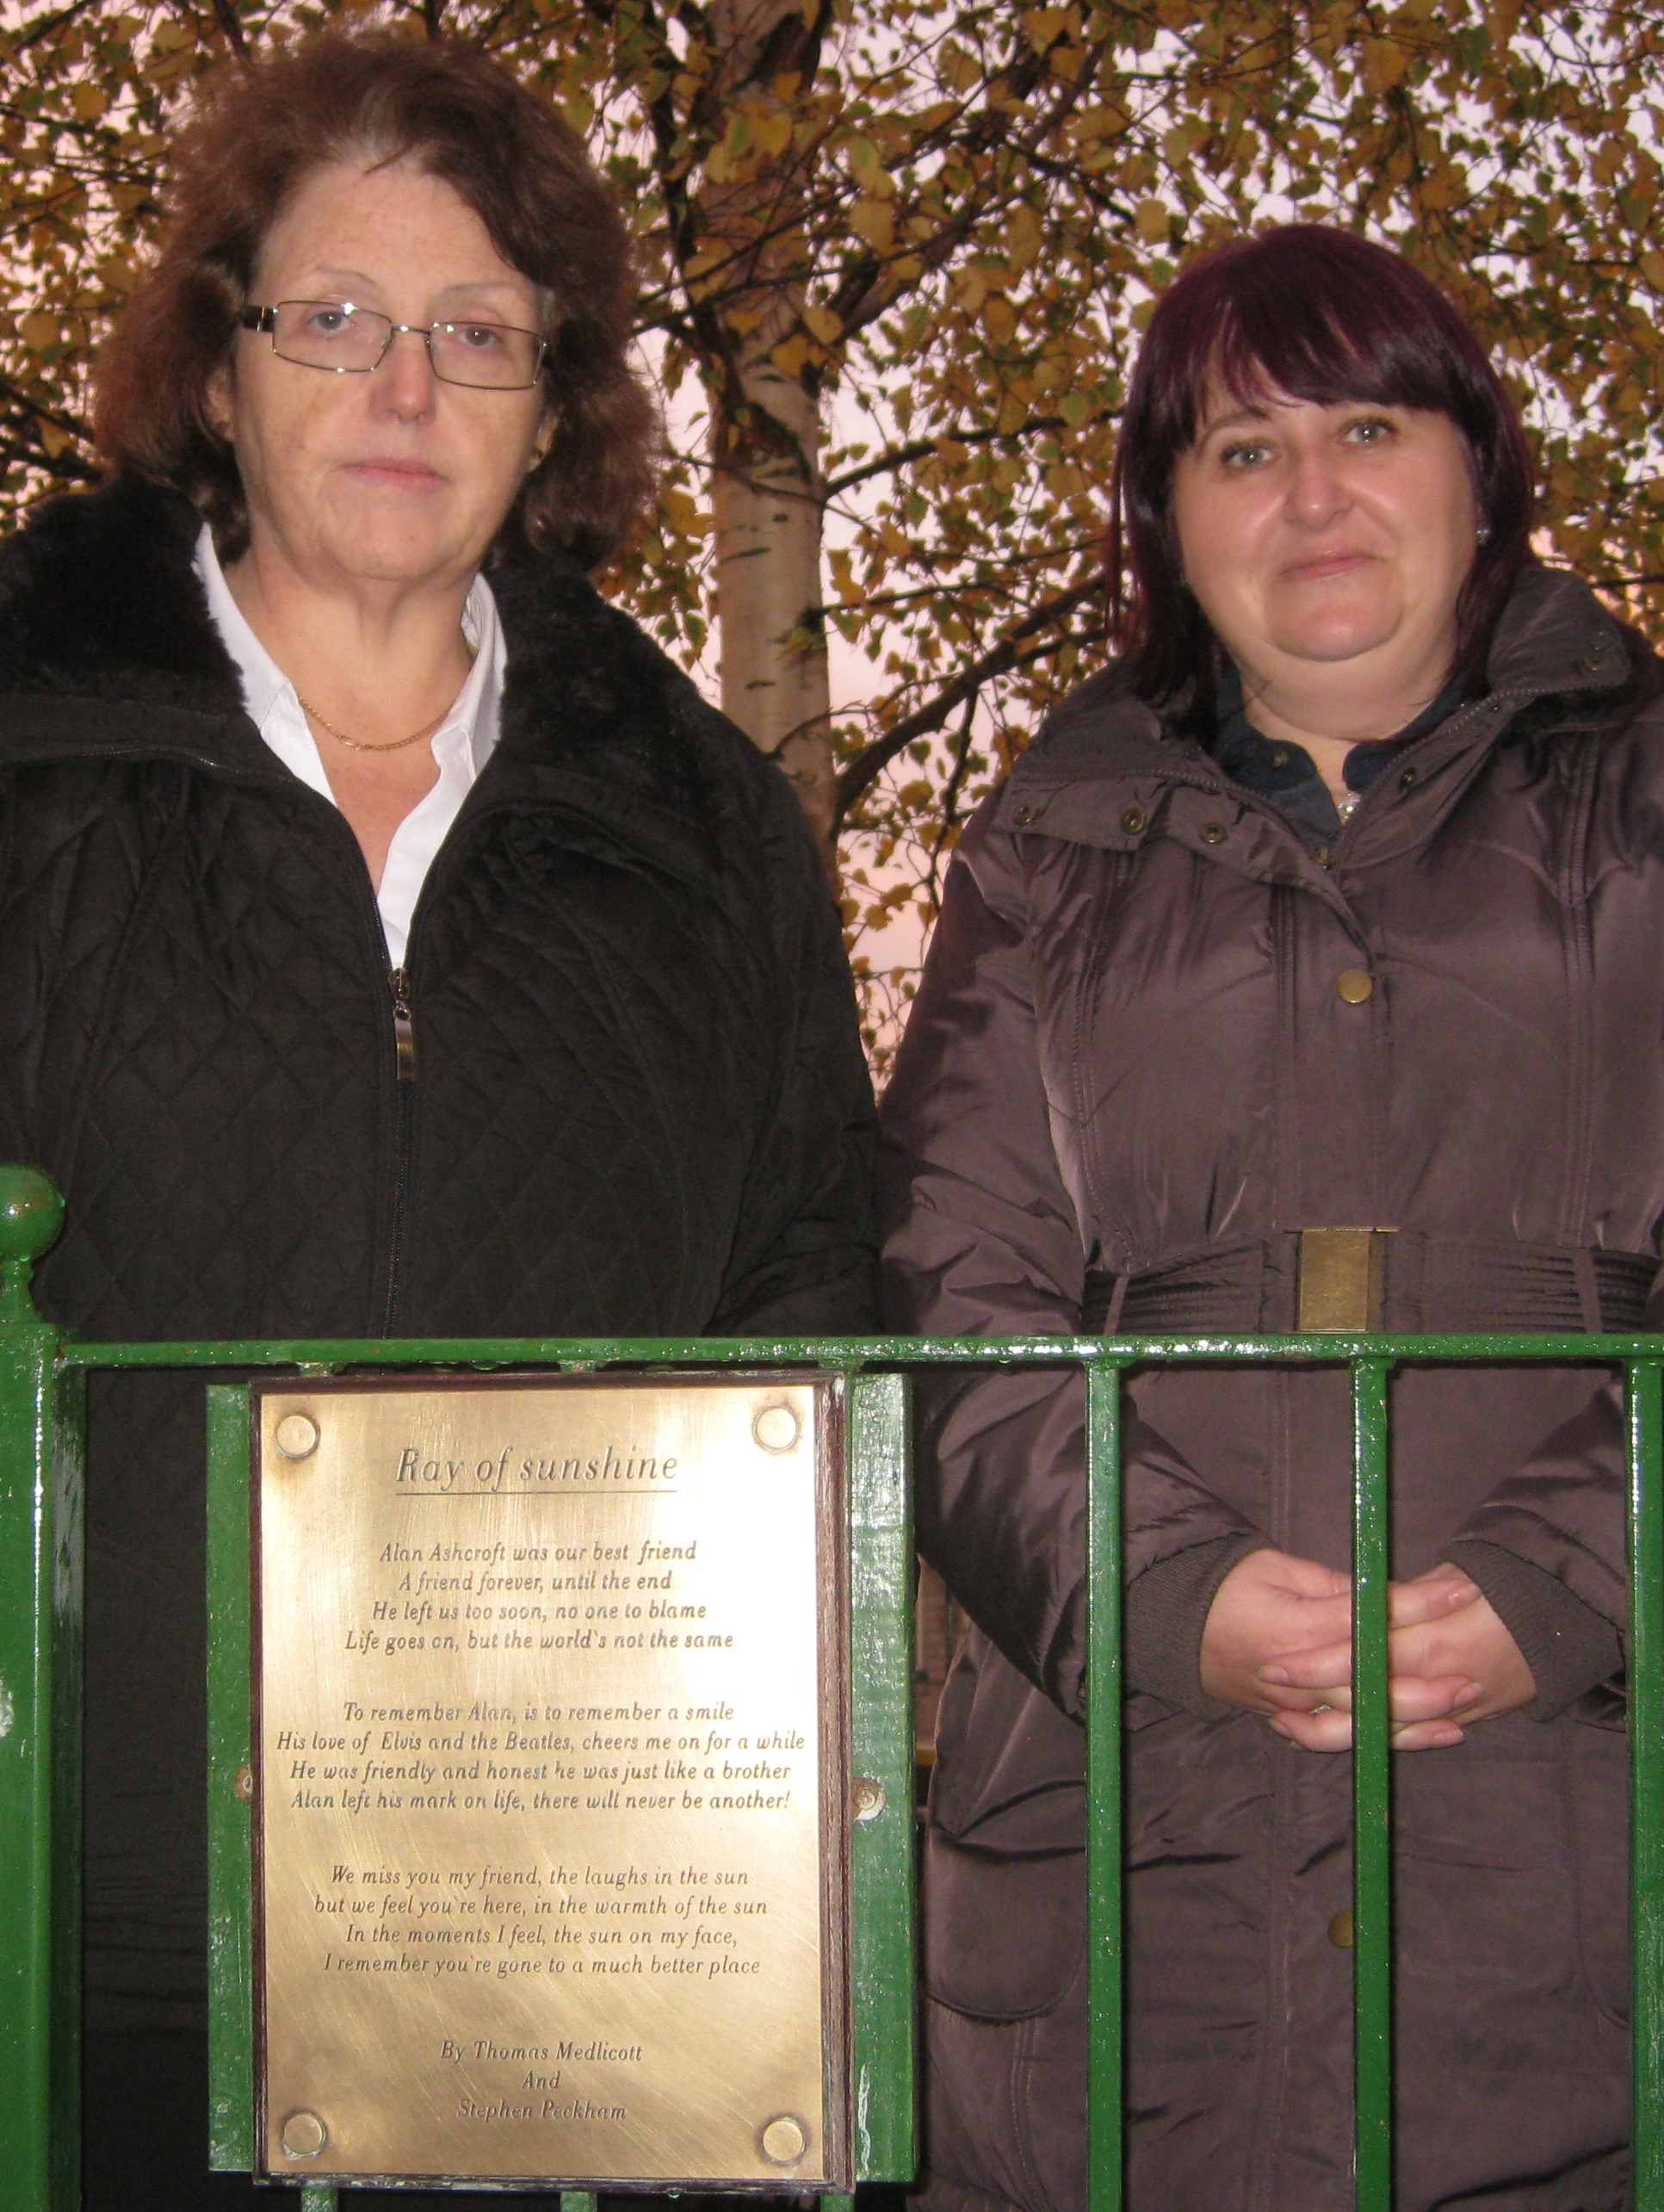 Rosie_Cooper_MP_with_Jackie_Aschcroft_at_the_remembrance_garden.jpg